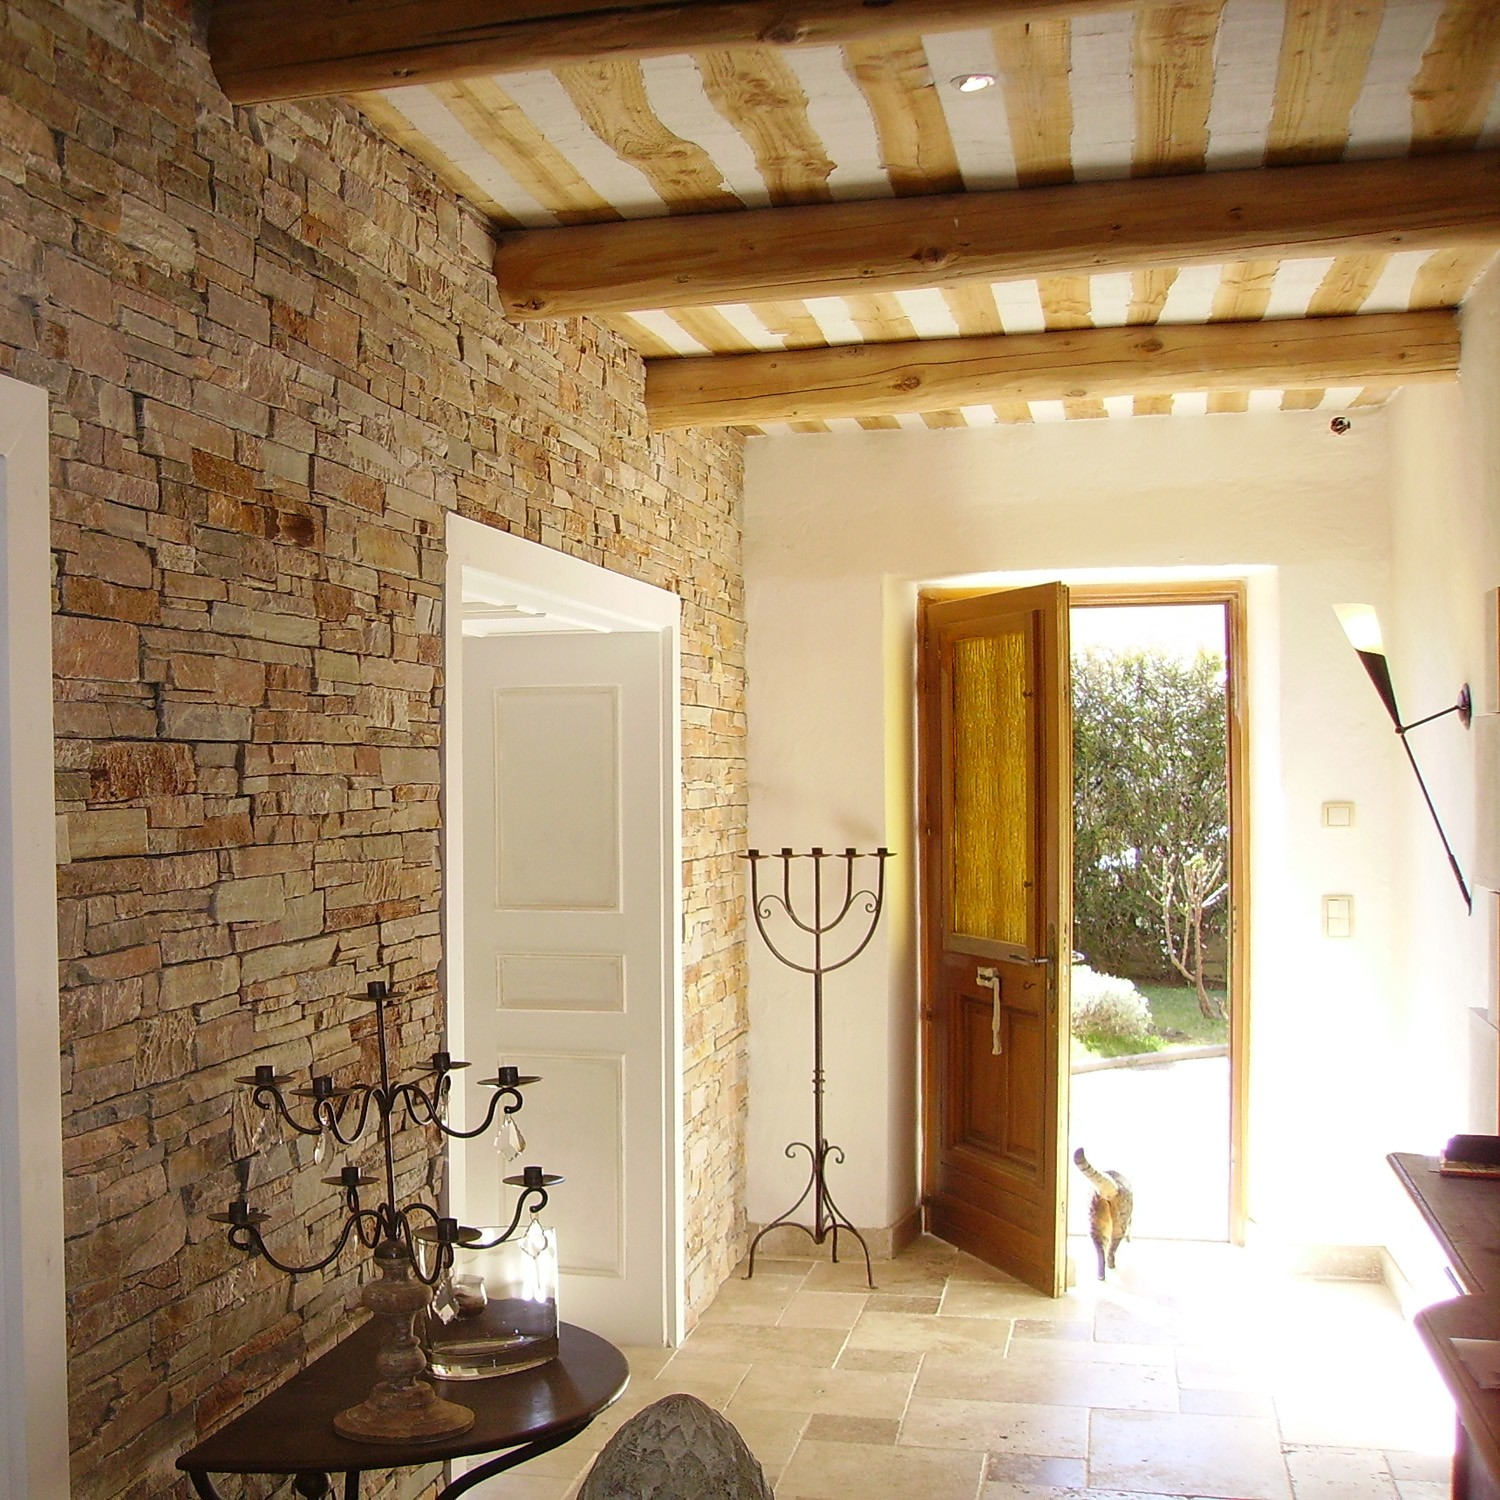 D coration interieur maison pierre exemples d 39 am nagements for Photo de decoration interieur